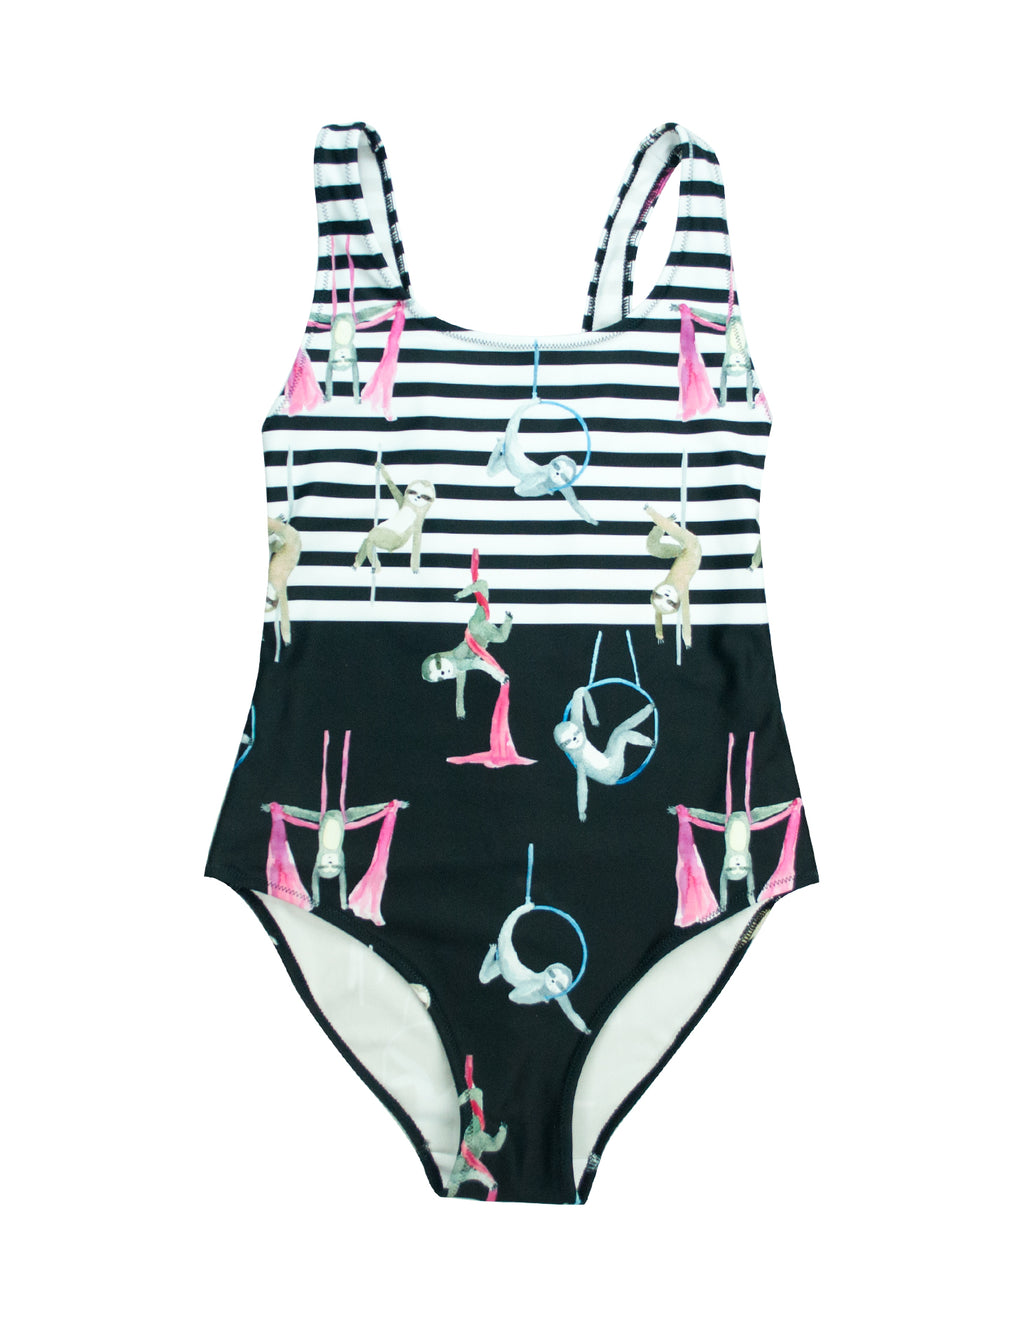 Circus Sloths Bodysuit One Piece Swim